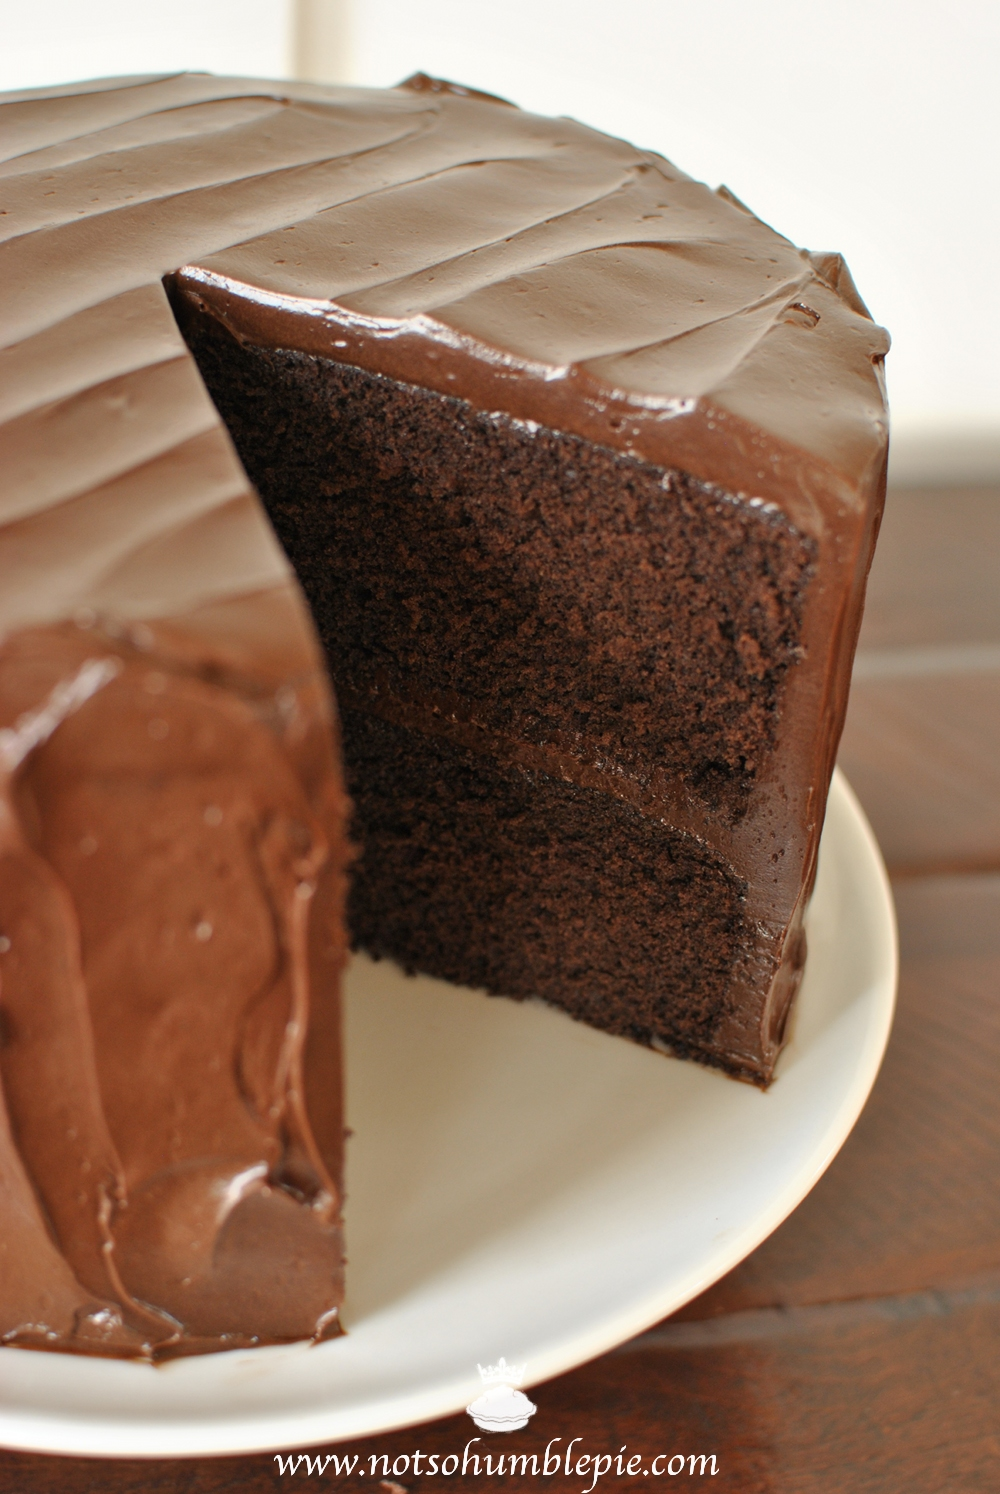 Chocolate Fudge Cake Recette